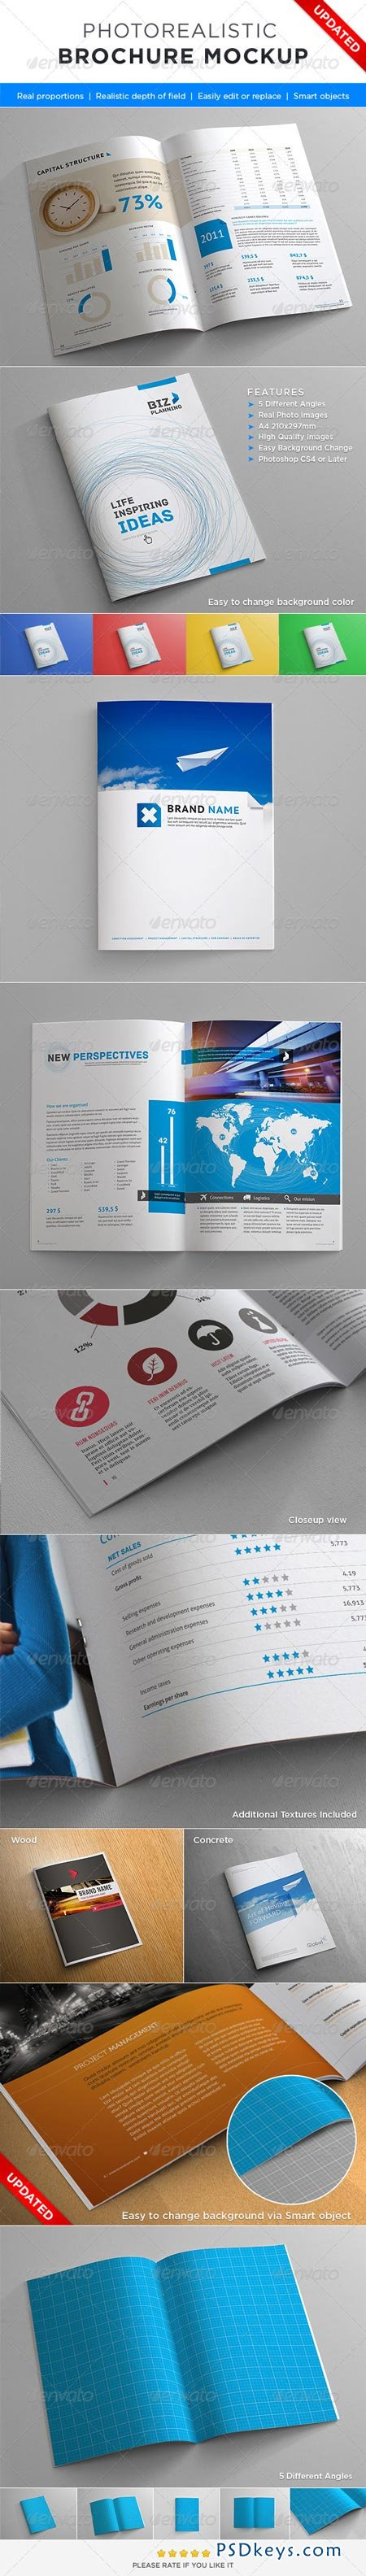 Photorealistic Brochure Mock-up 2356999